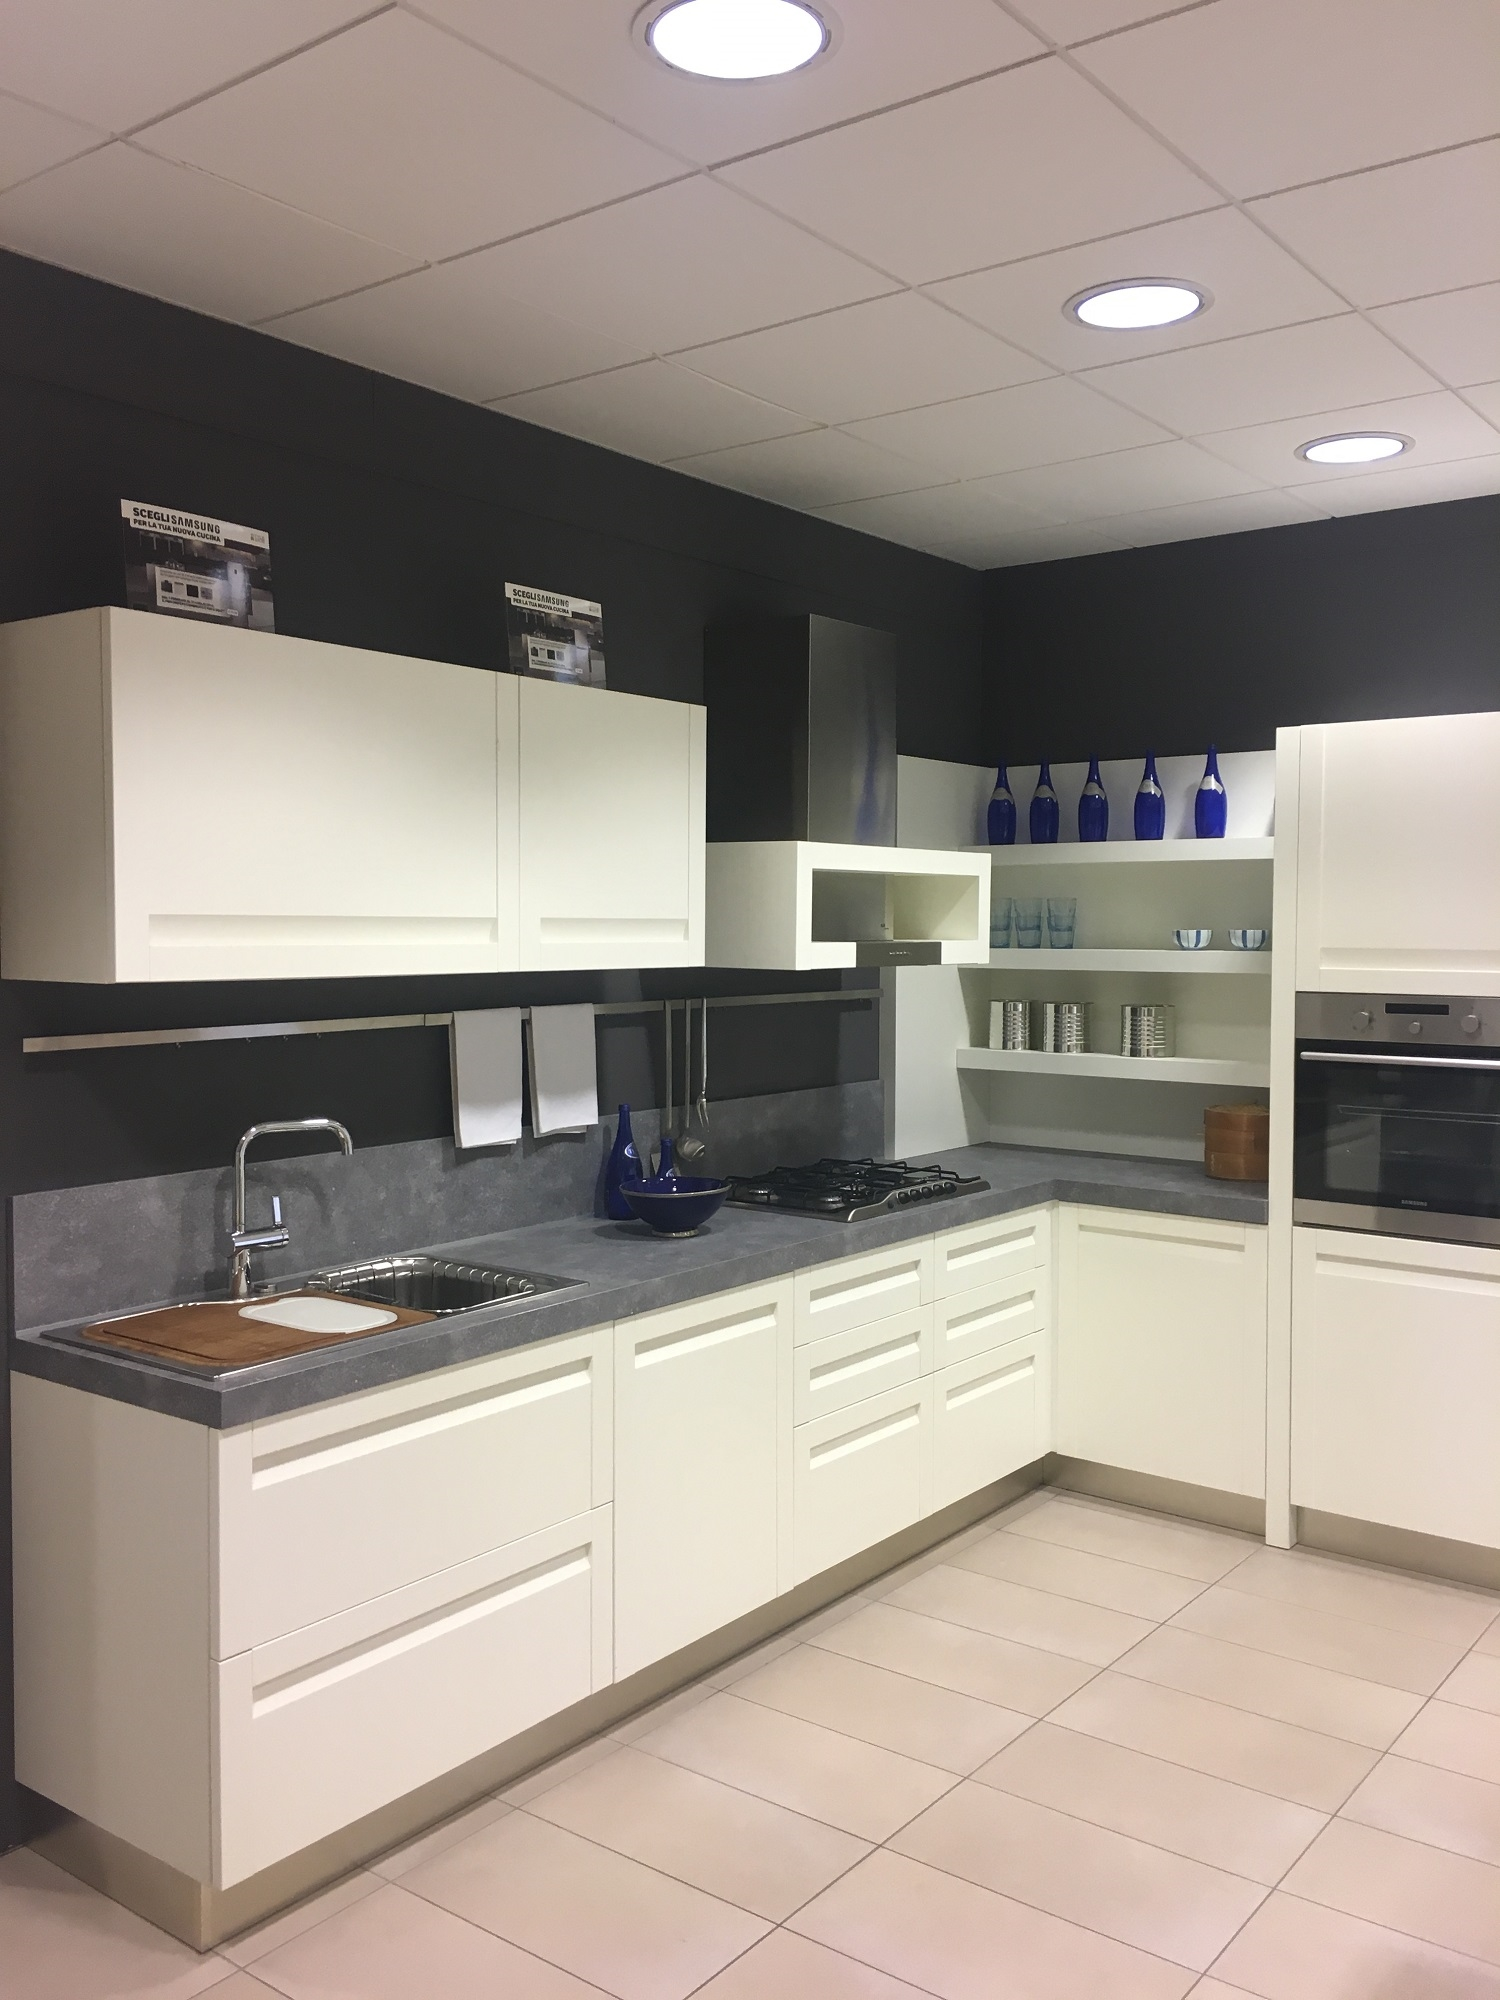 Ged Cucine Treviso. Cool Treviso Ged Cucine With Ged Cucine Treviso ...